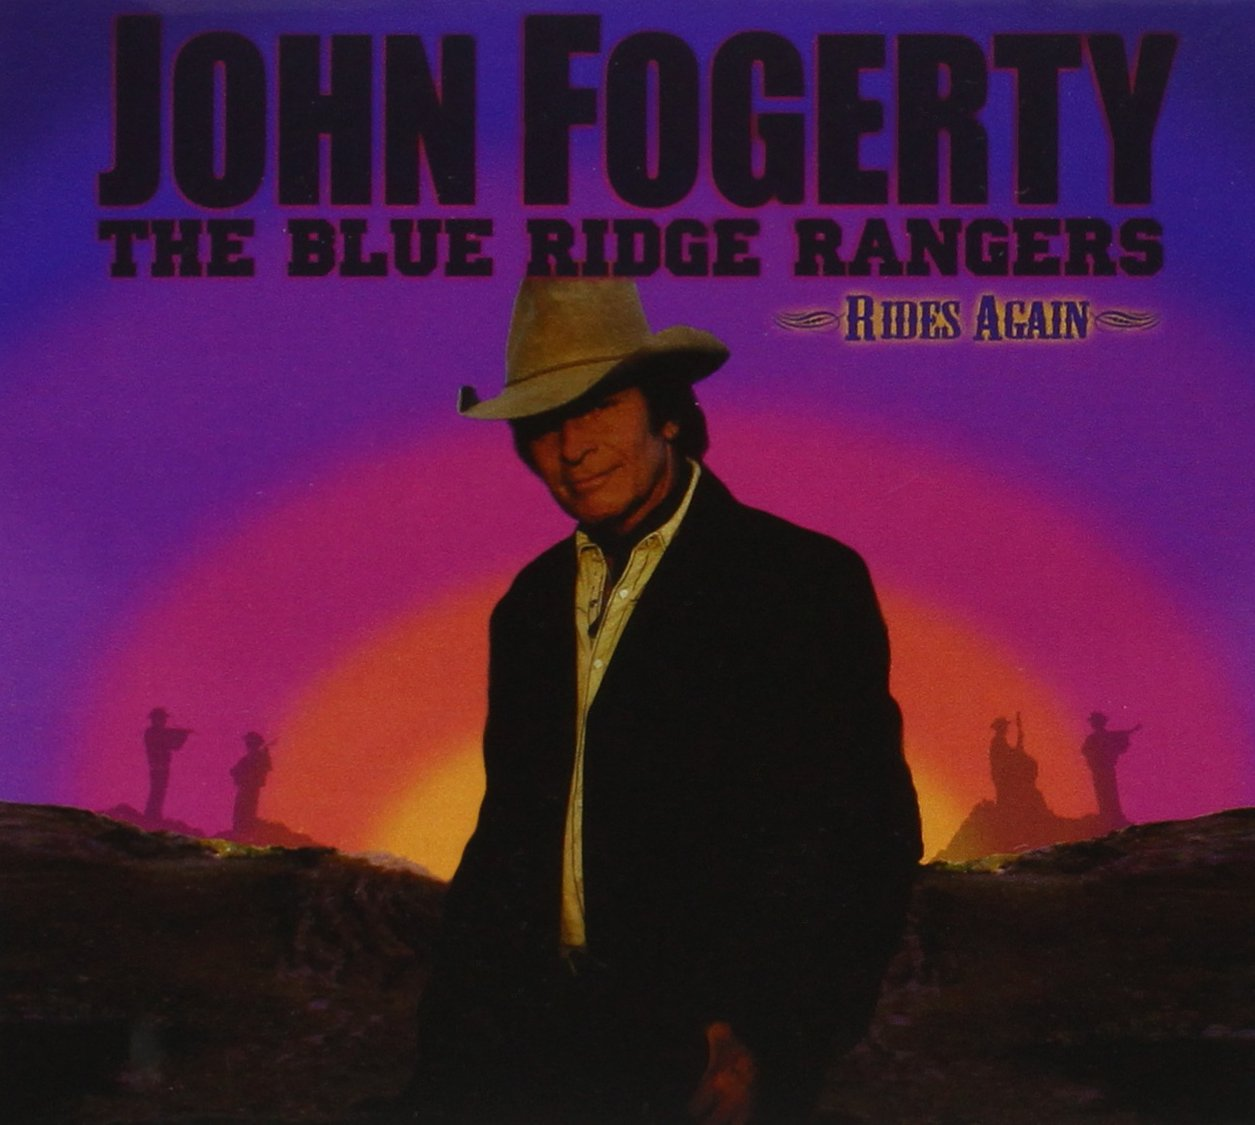 The Blue Ridge Rangers Rides Again Music